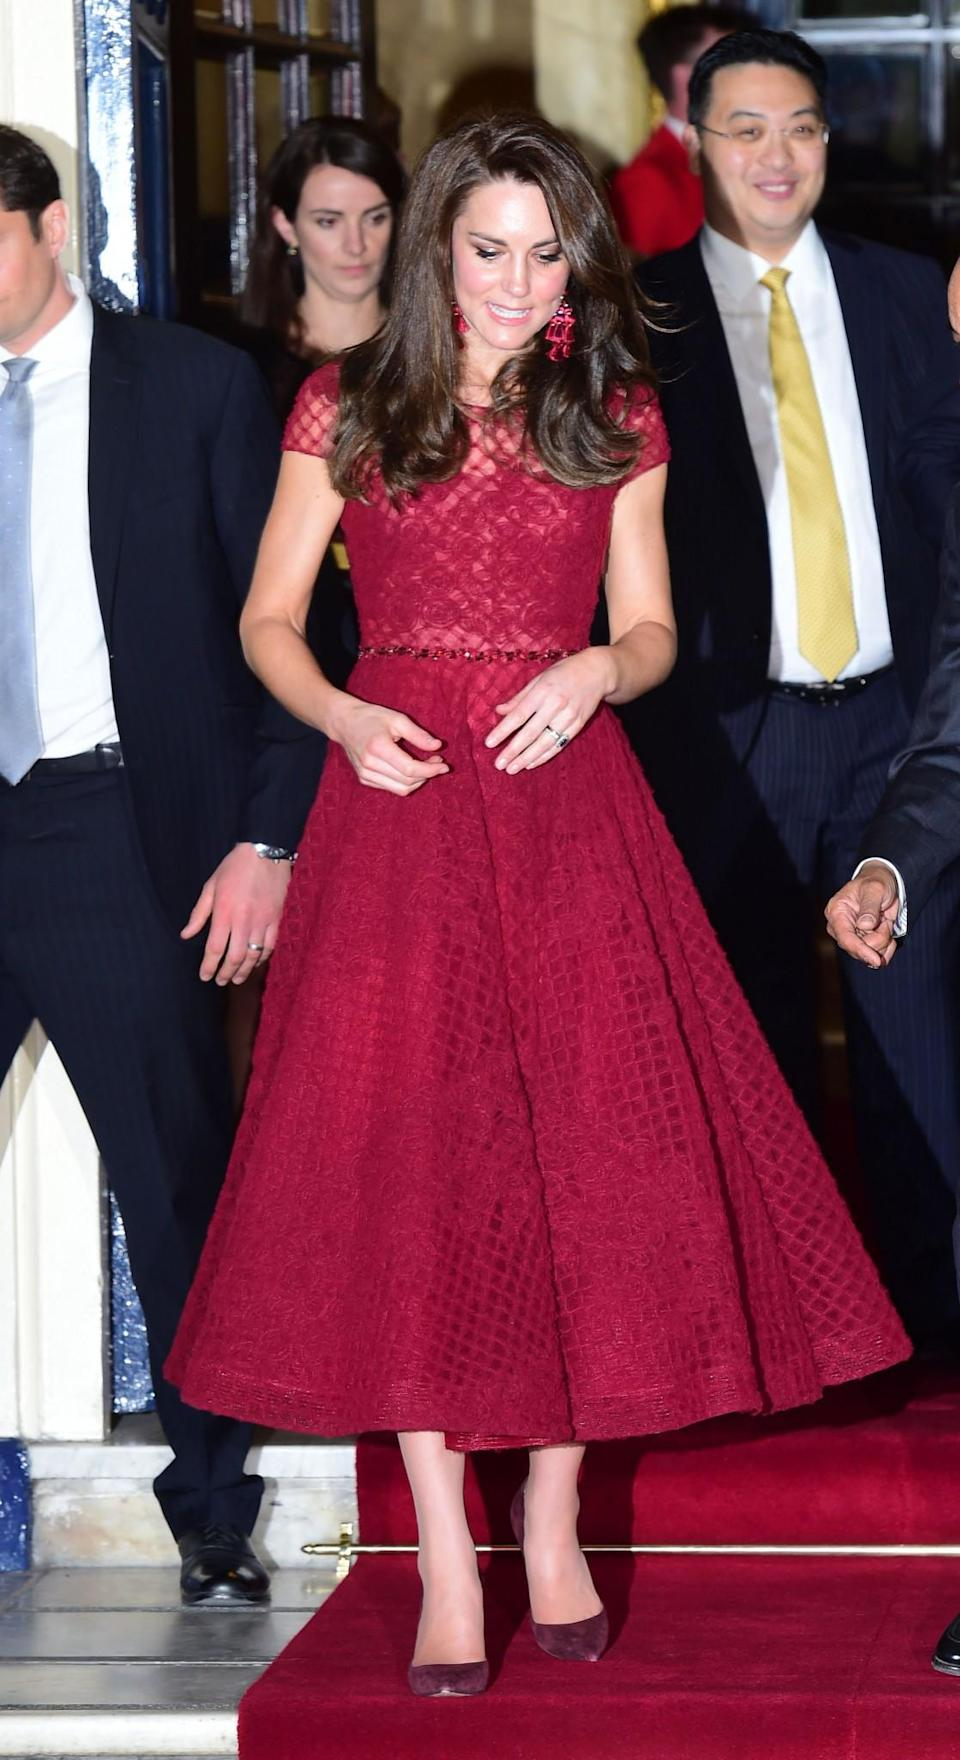 <p>Kate donned the colour of the season for the opening night of West End musical, <i>42nd Street</i>. Wearing a claret midi-length dress by Marchesa Notte (that cost £1,105), the Duchess opted for some seriously fashion-forward accessories including a pair of pom pom statement earrings from Kate Spade. Gianvito Rossi pumps and a matching Mulberry clutch topped off the look.<br><i>[Photo: PA]</i> </p>